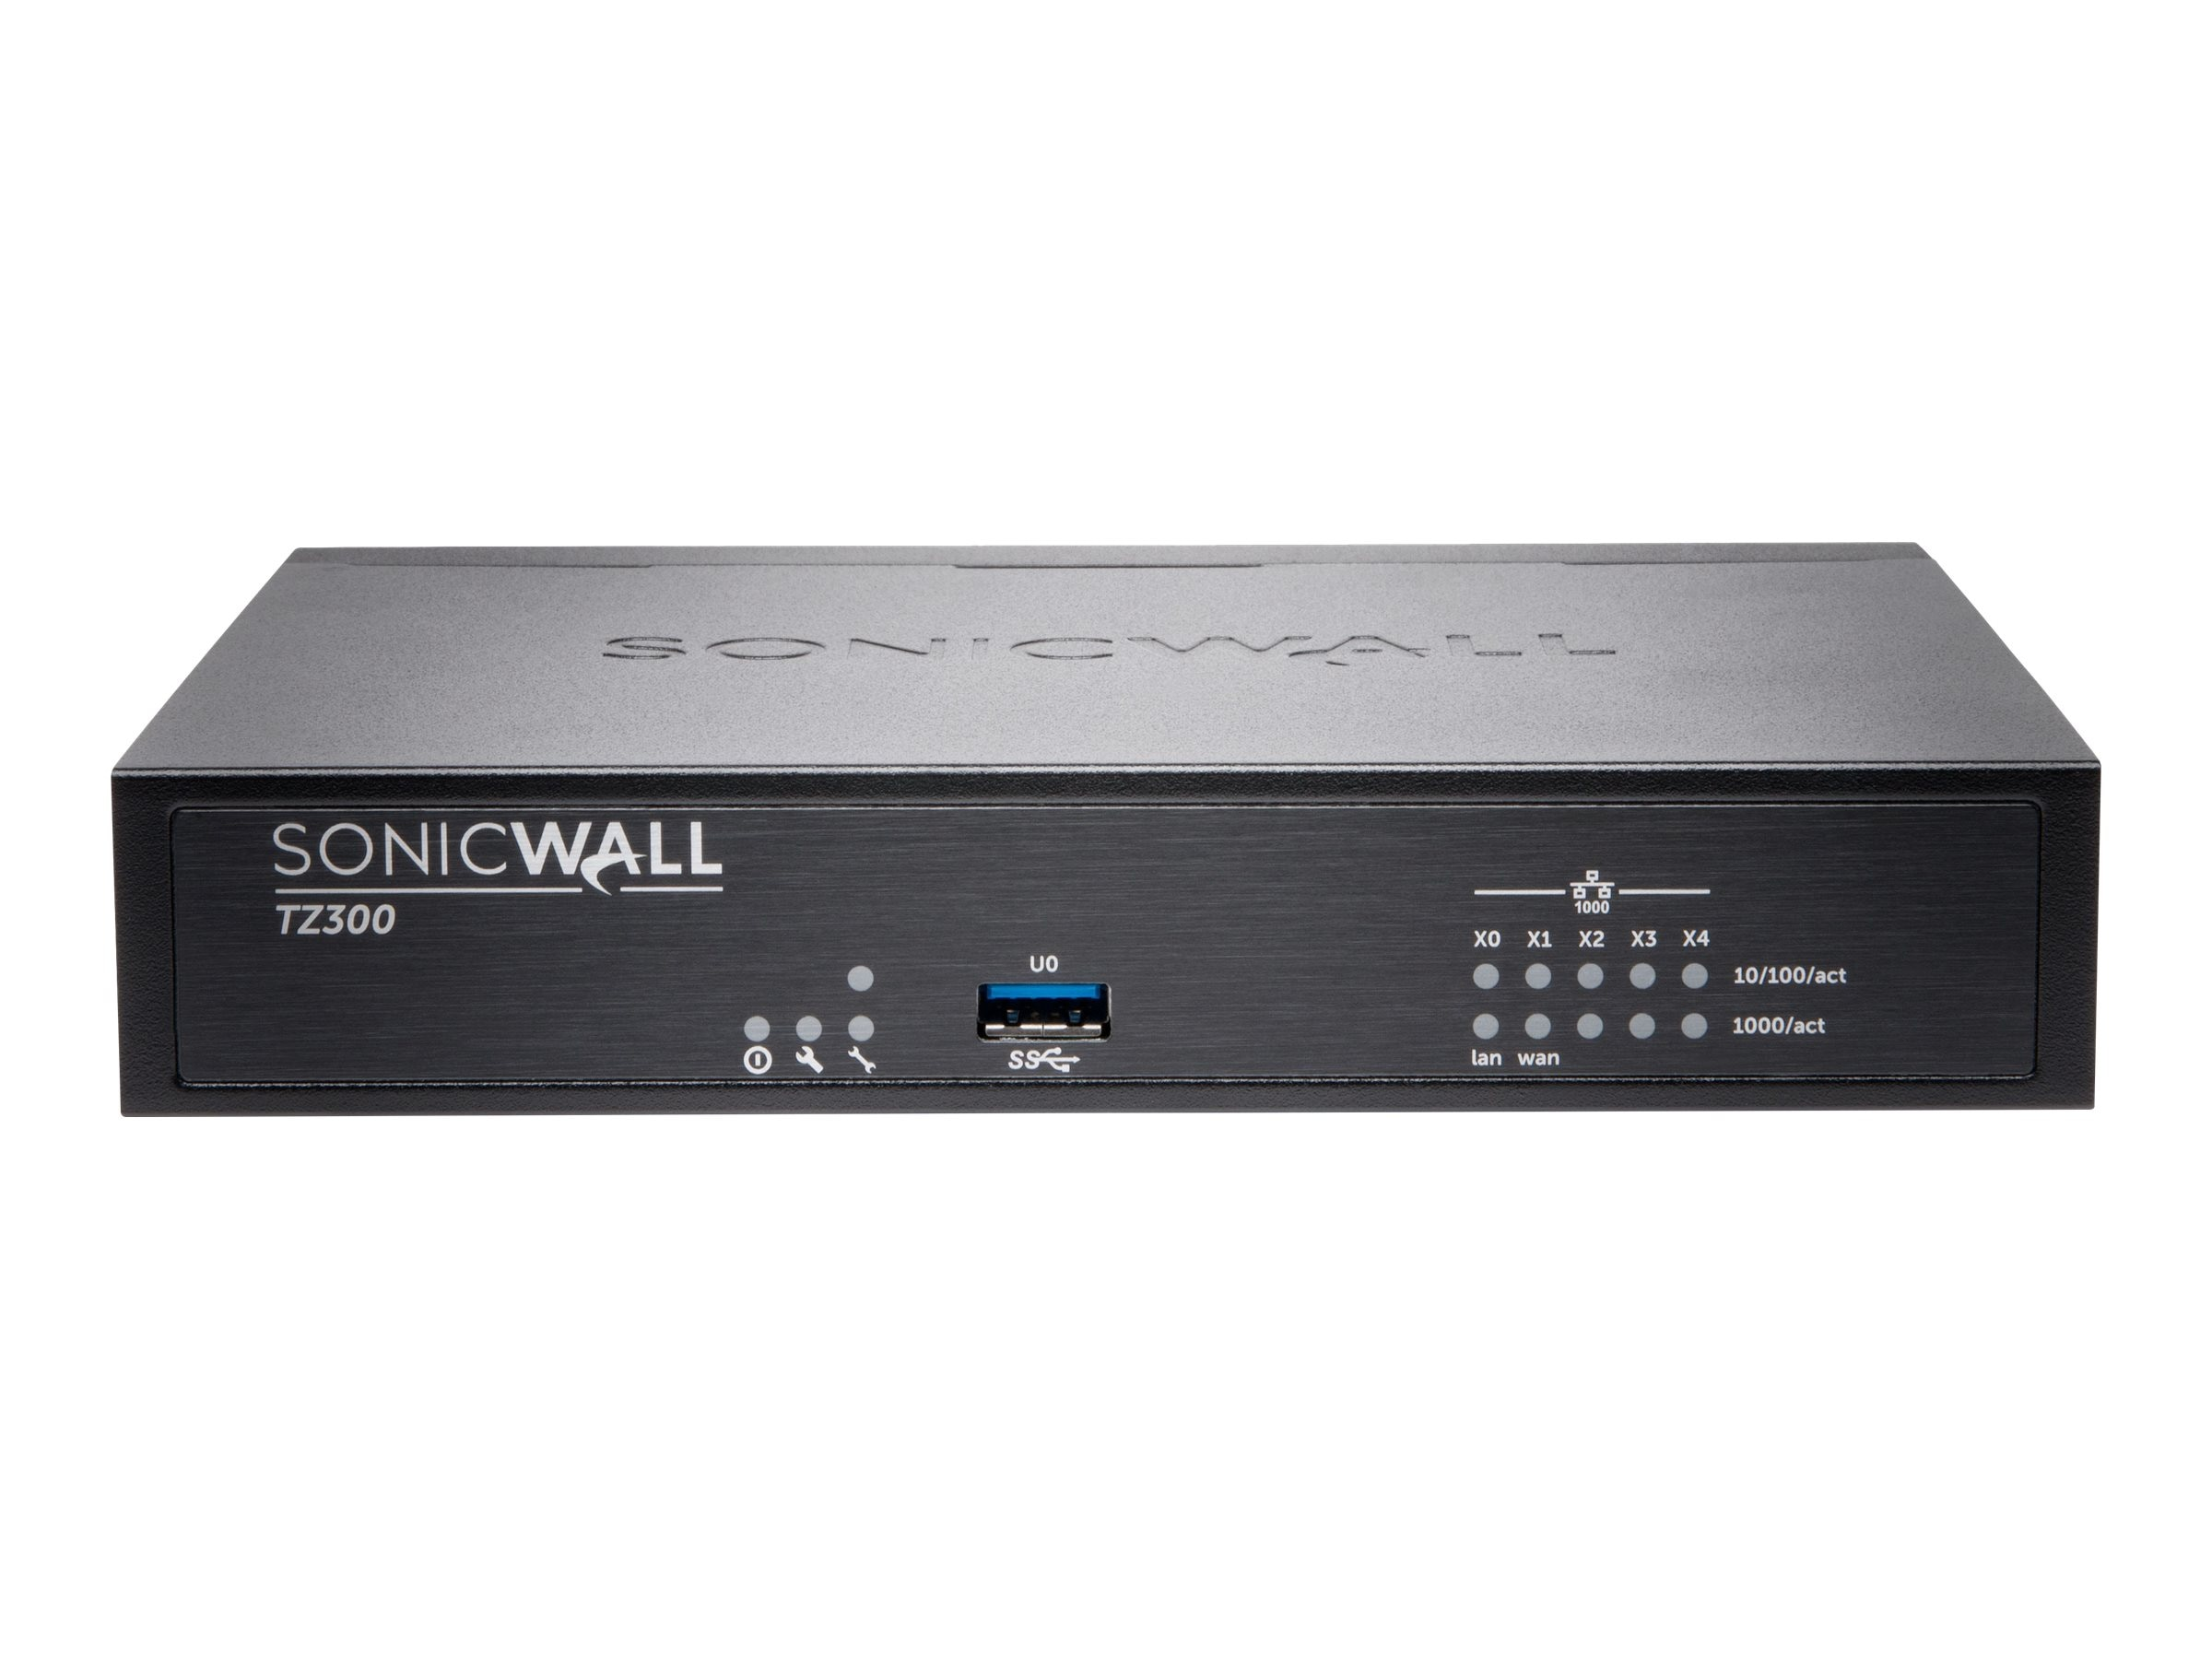 SonicWALL 01-SSC-0575 Image 2